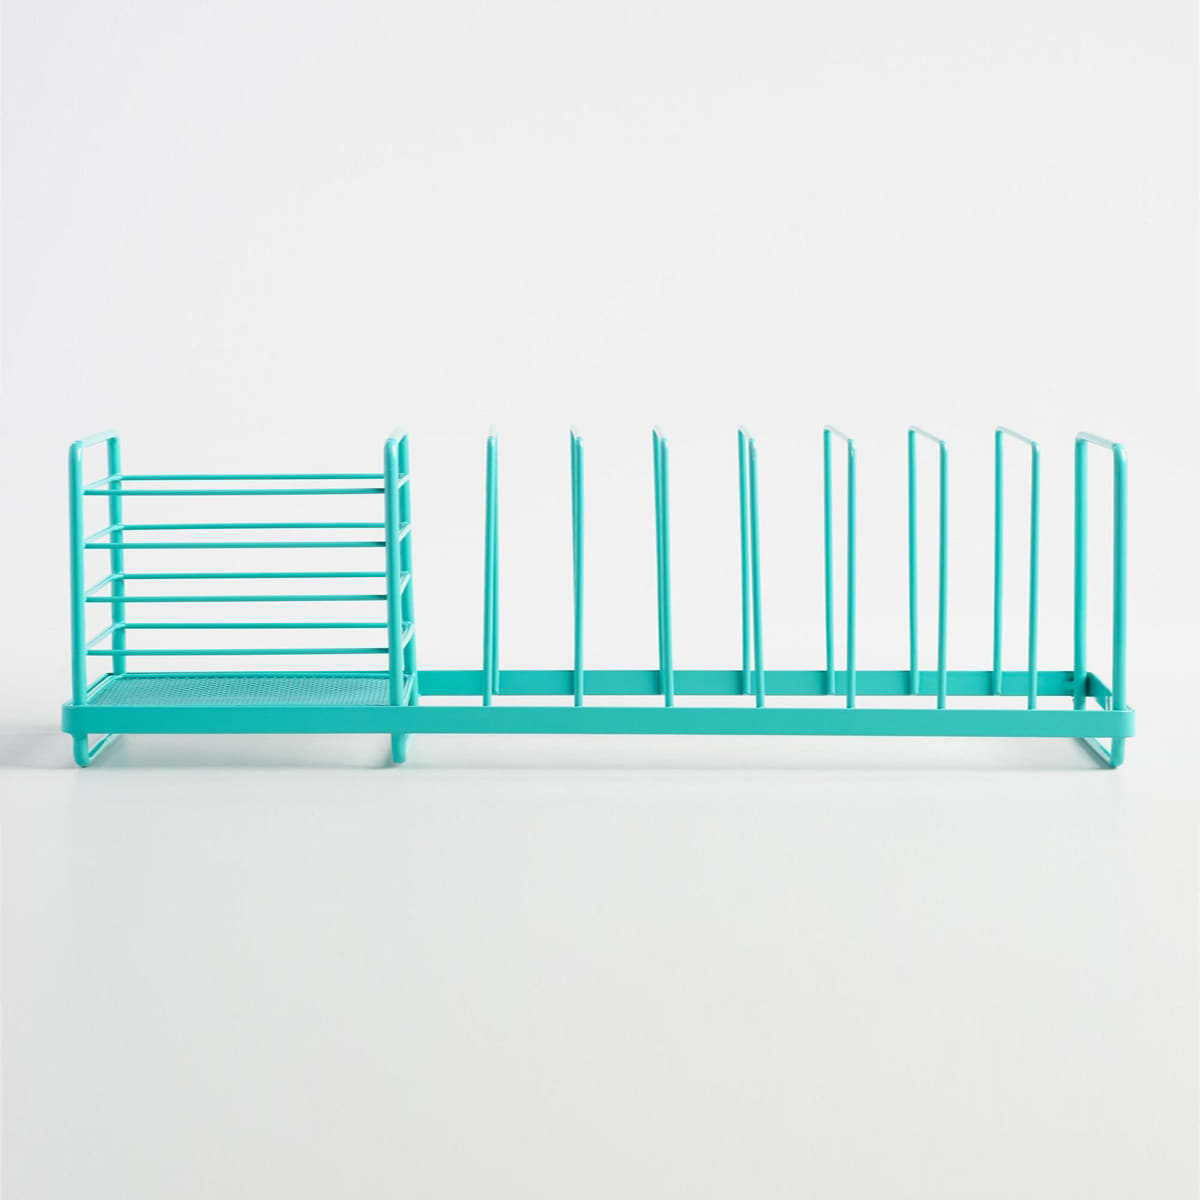 10 Dish Drying Racks That Are Better than a Tea Towel: gallery image 2